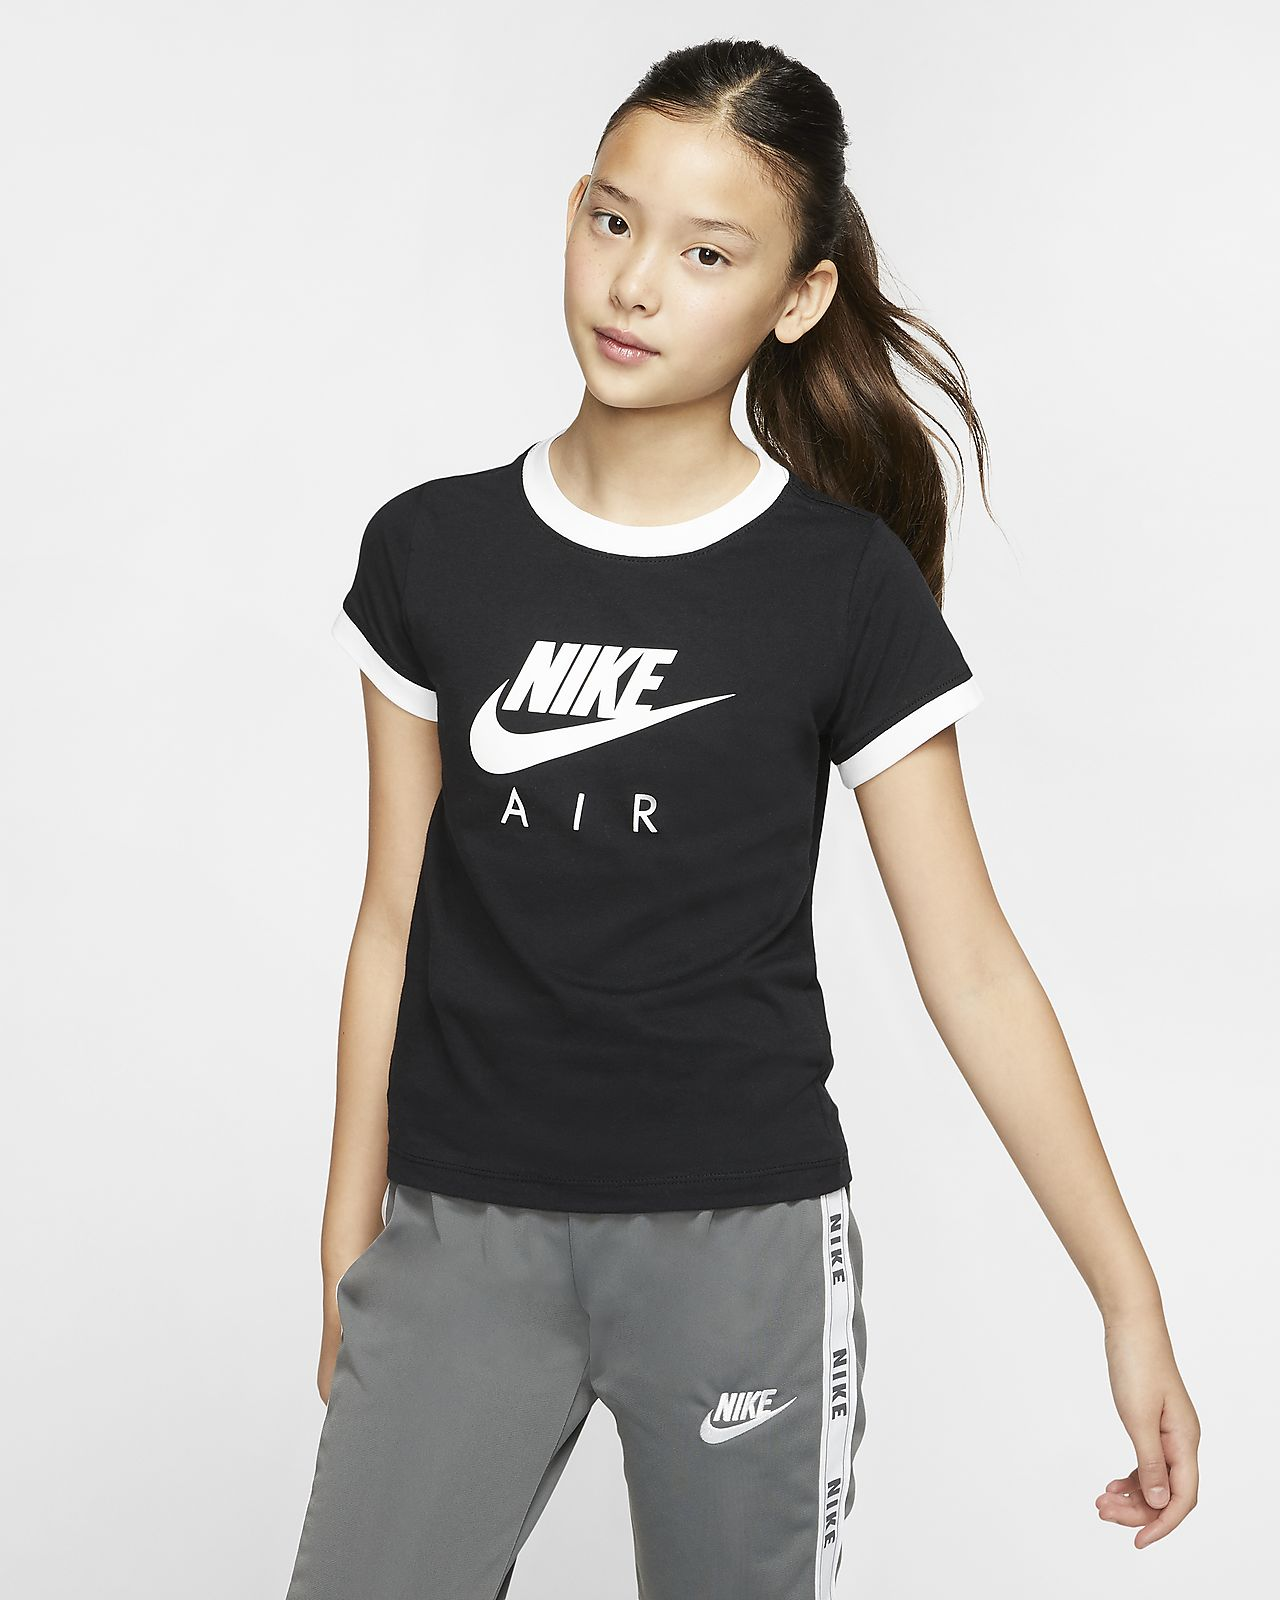 T-shirt Nike Air Júnior